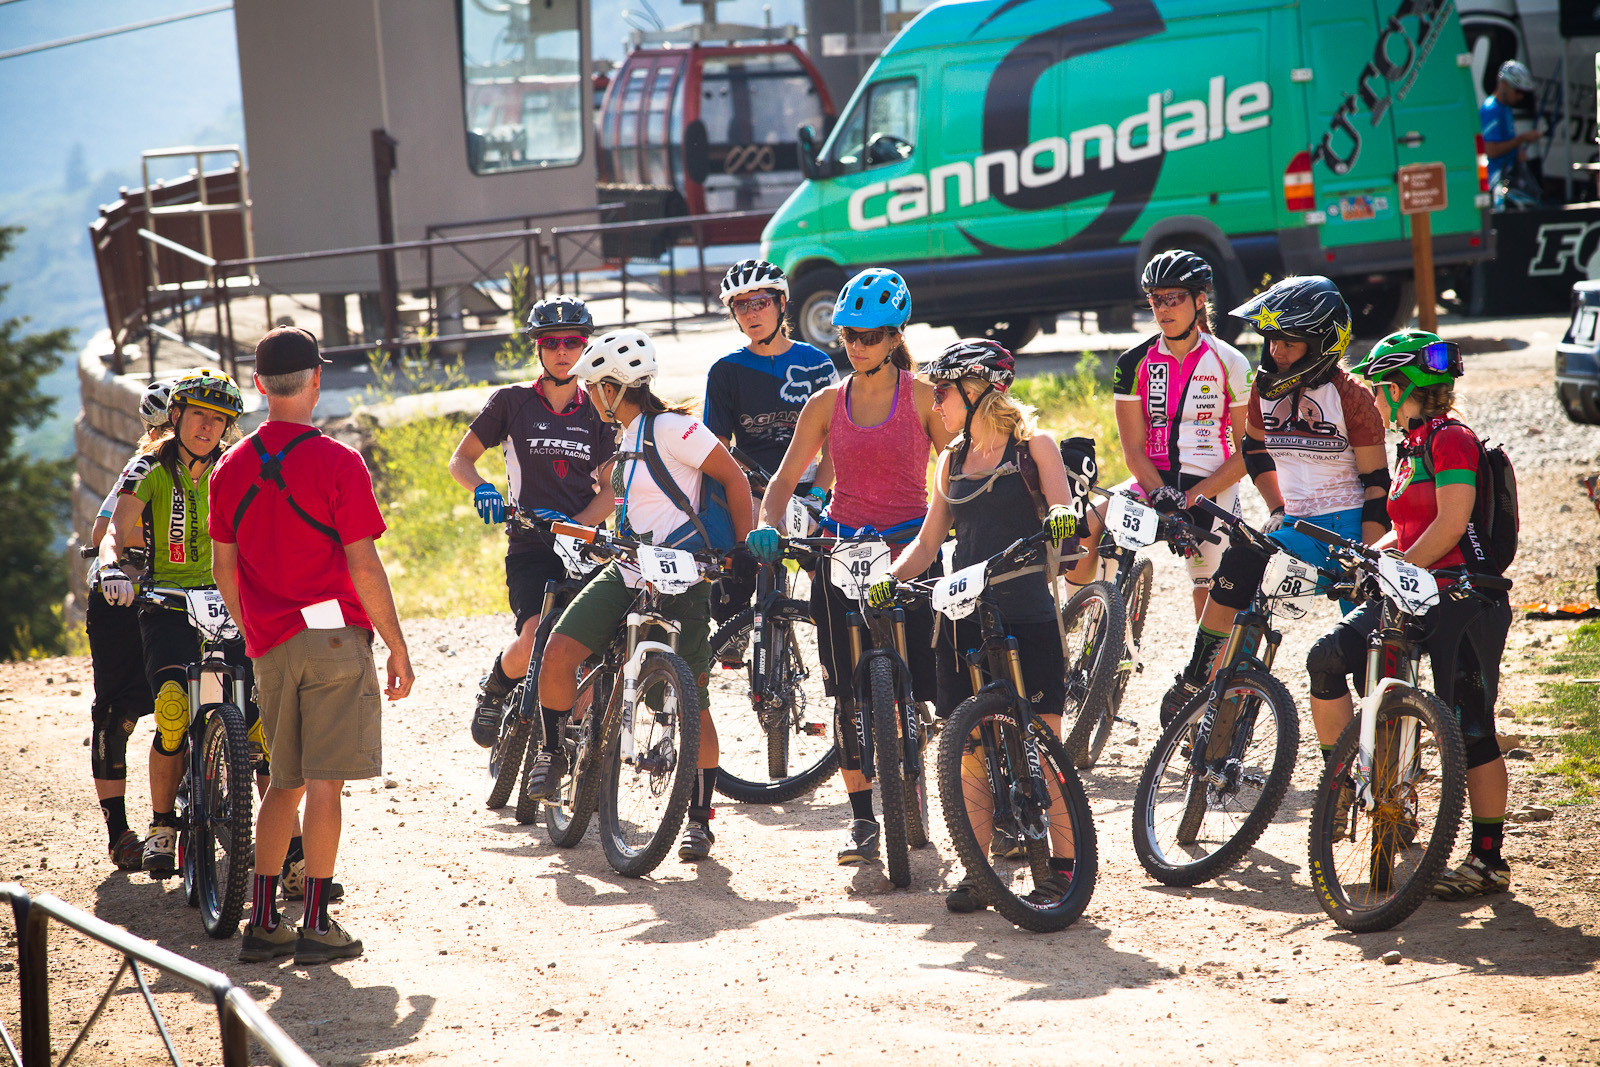 Strong Women's Turnout at Bell Enduro Cup at Canyons Resort - Race Report, Photos and Video: Bell Enduro Cup at Canyons Resort - Mountain Biking Pictures - Vital MTB